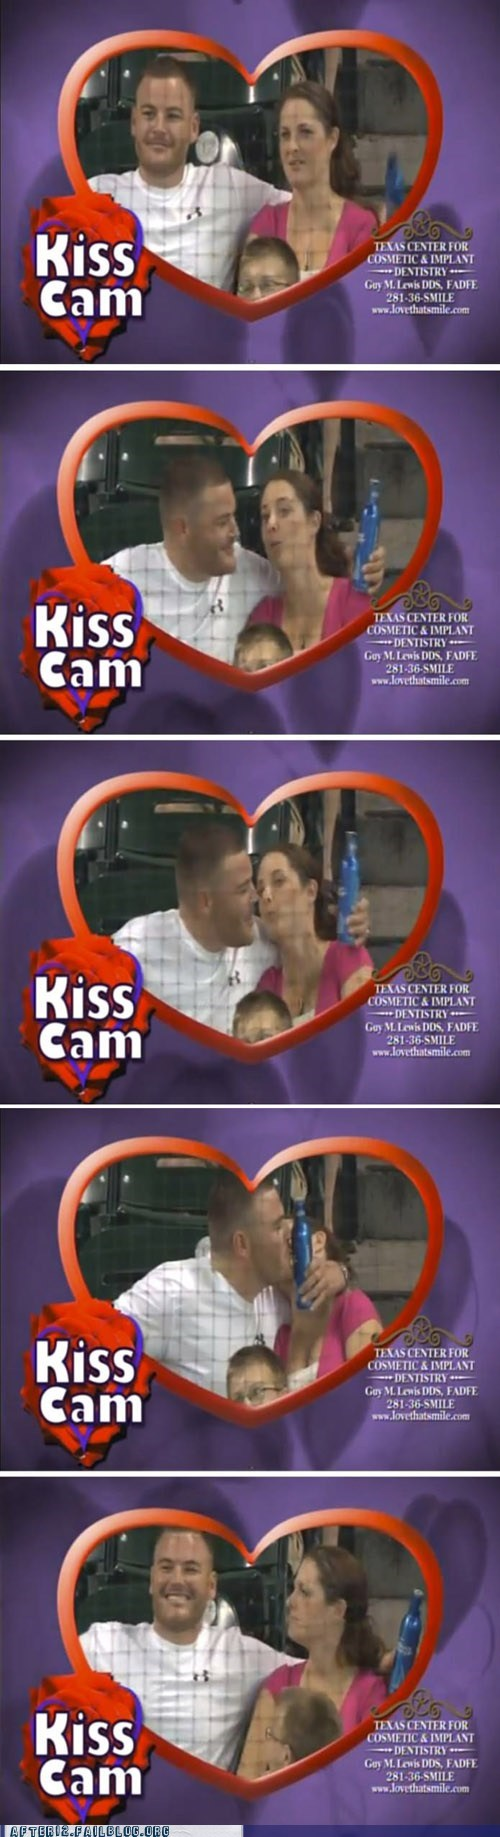 beer sports Kiss Cam funny - 6514717440